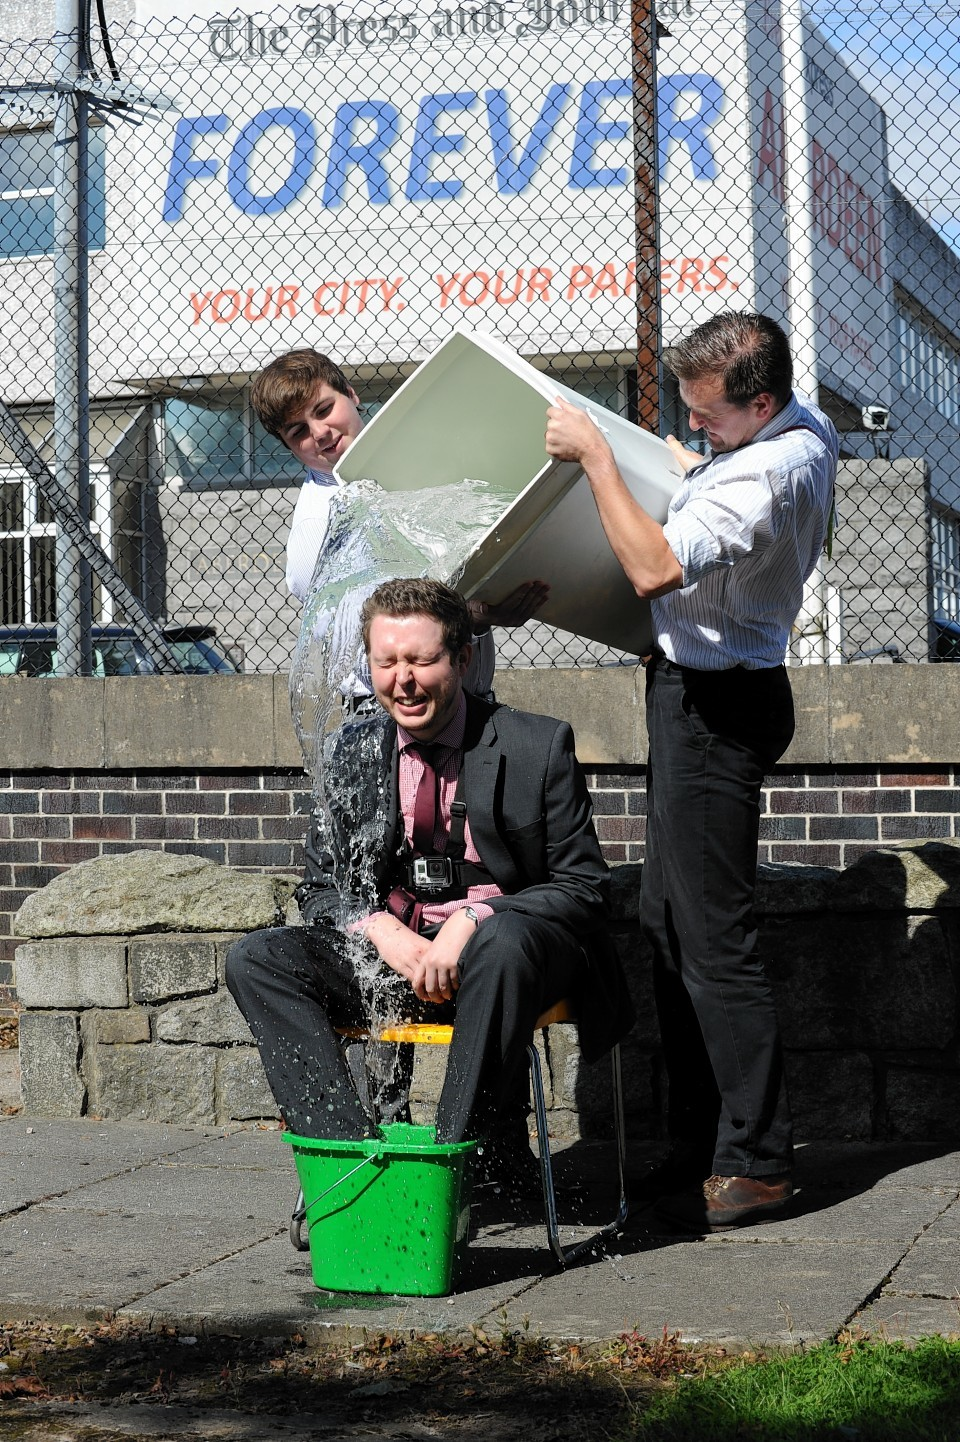 The Press and Journal's online editor Martin Little accepts the ice bucket challenge